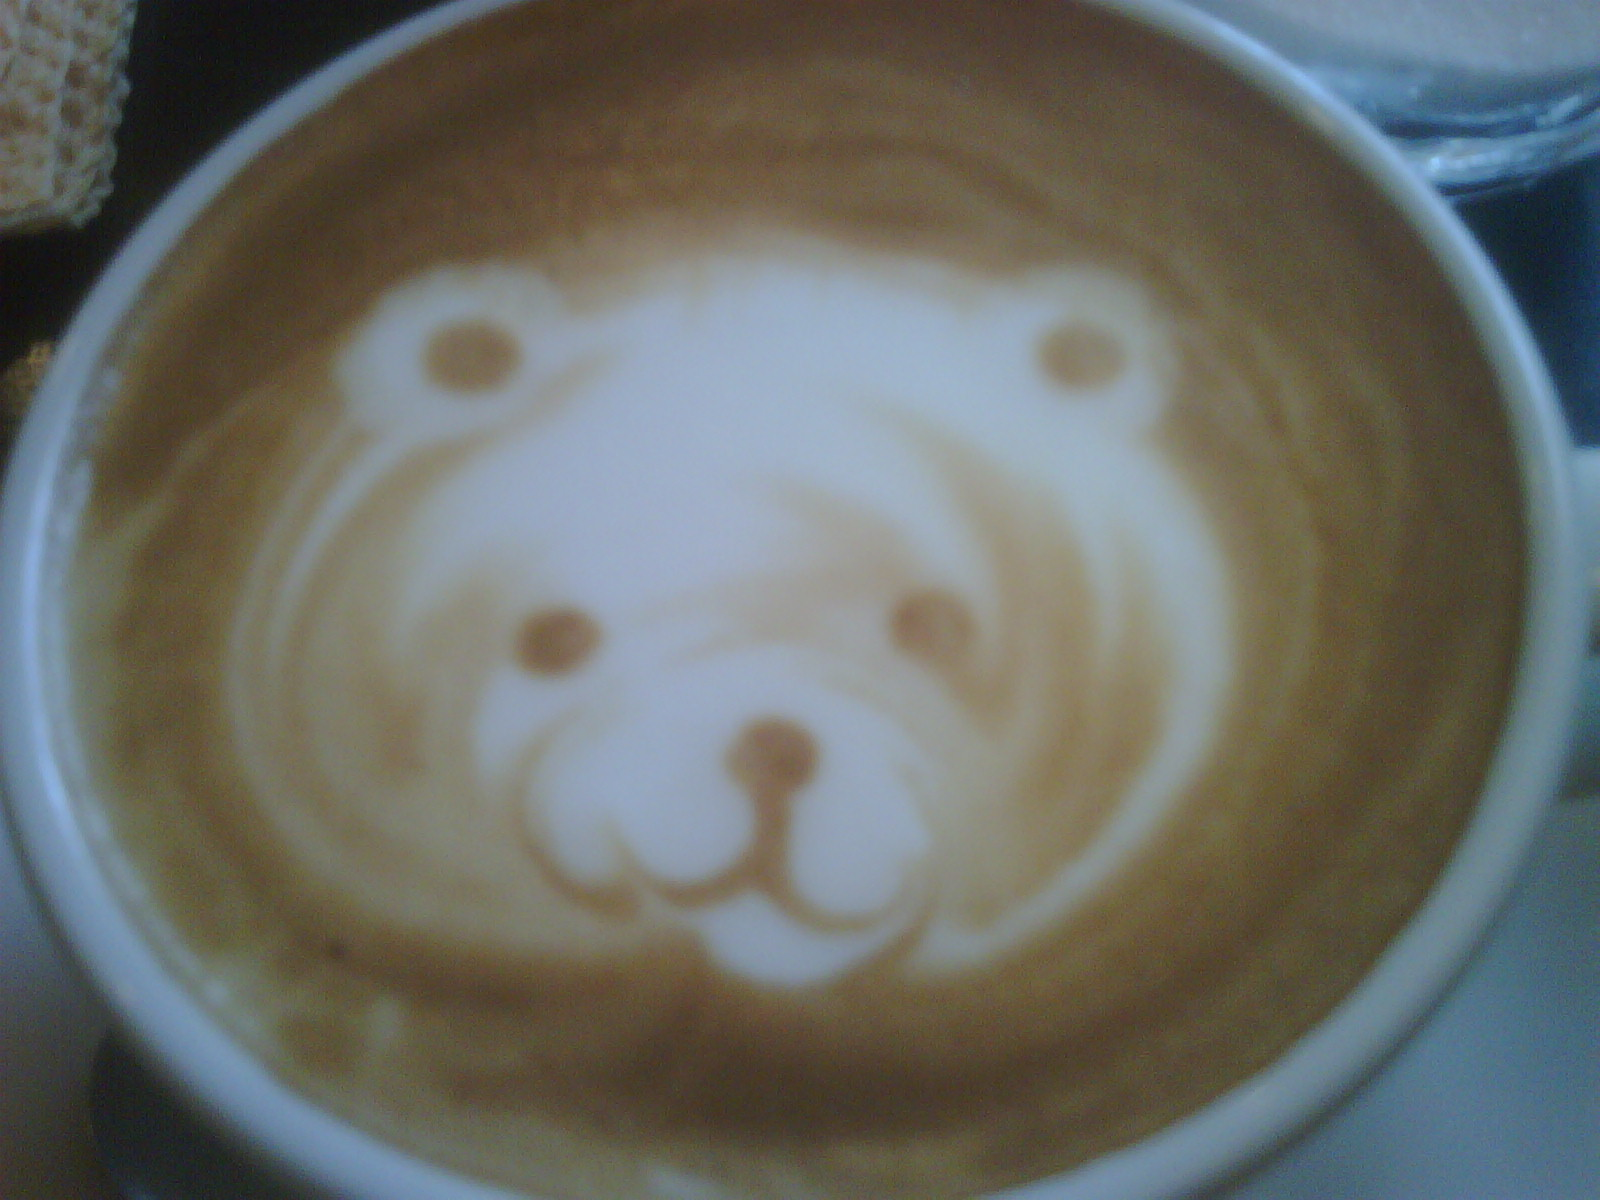 bear Coffe.jpg